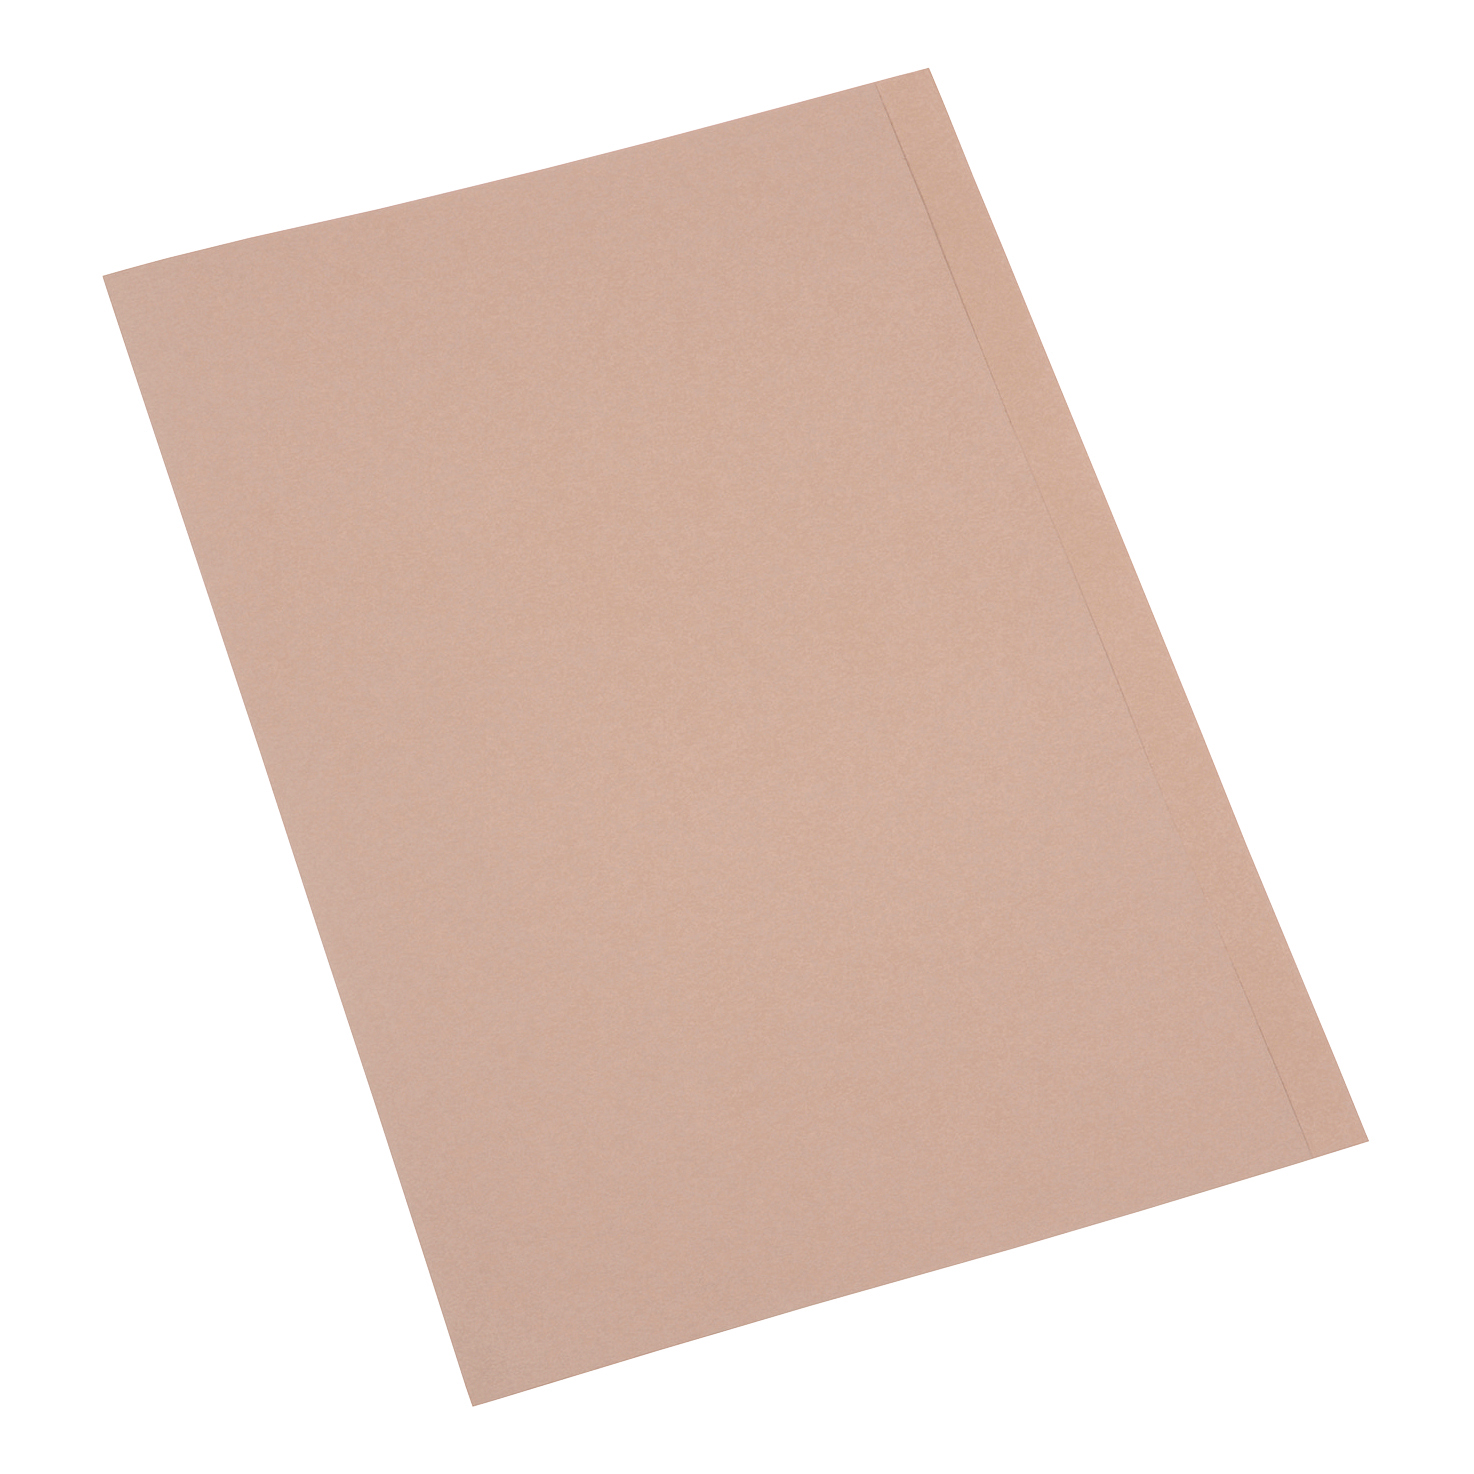 5 Star Office Square Cut Folder Recycled 250gsm Foolscap Buff [Pack 100]